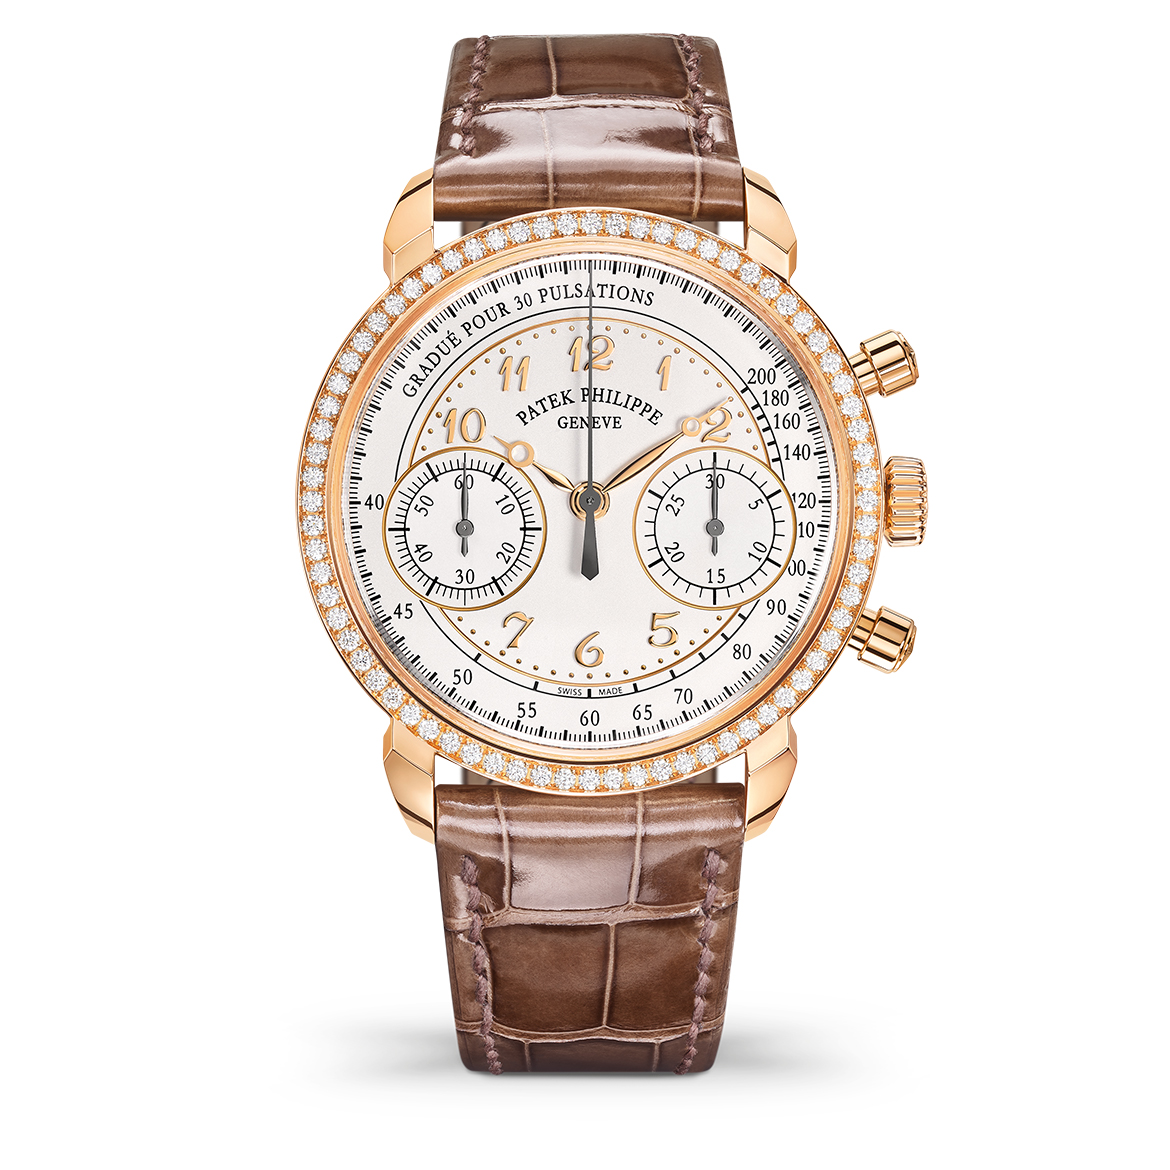 Ref. 7150/250R  Complications image